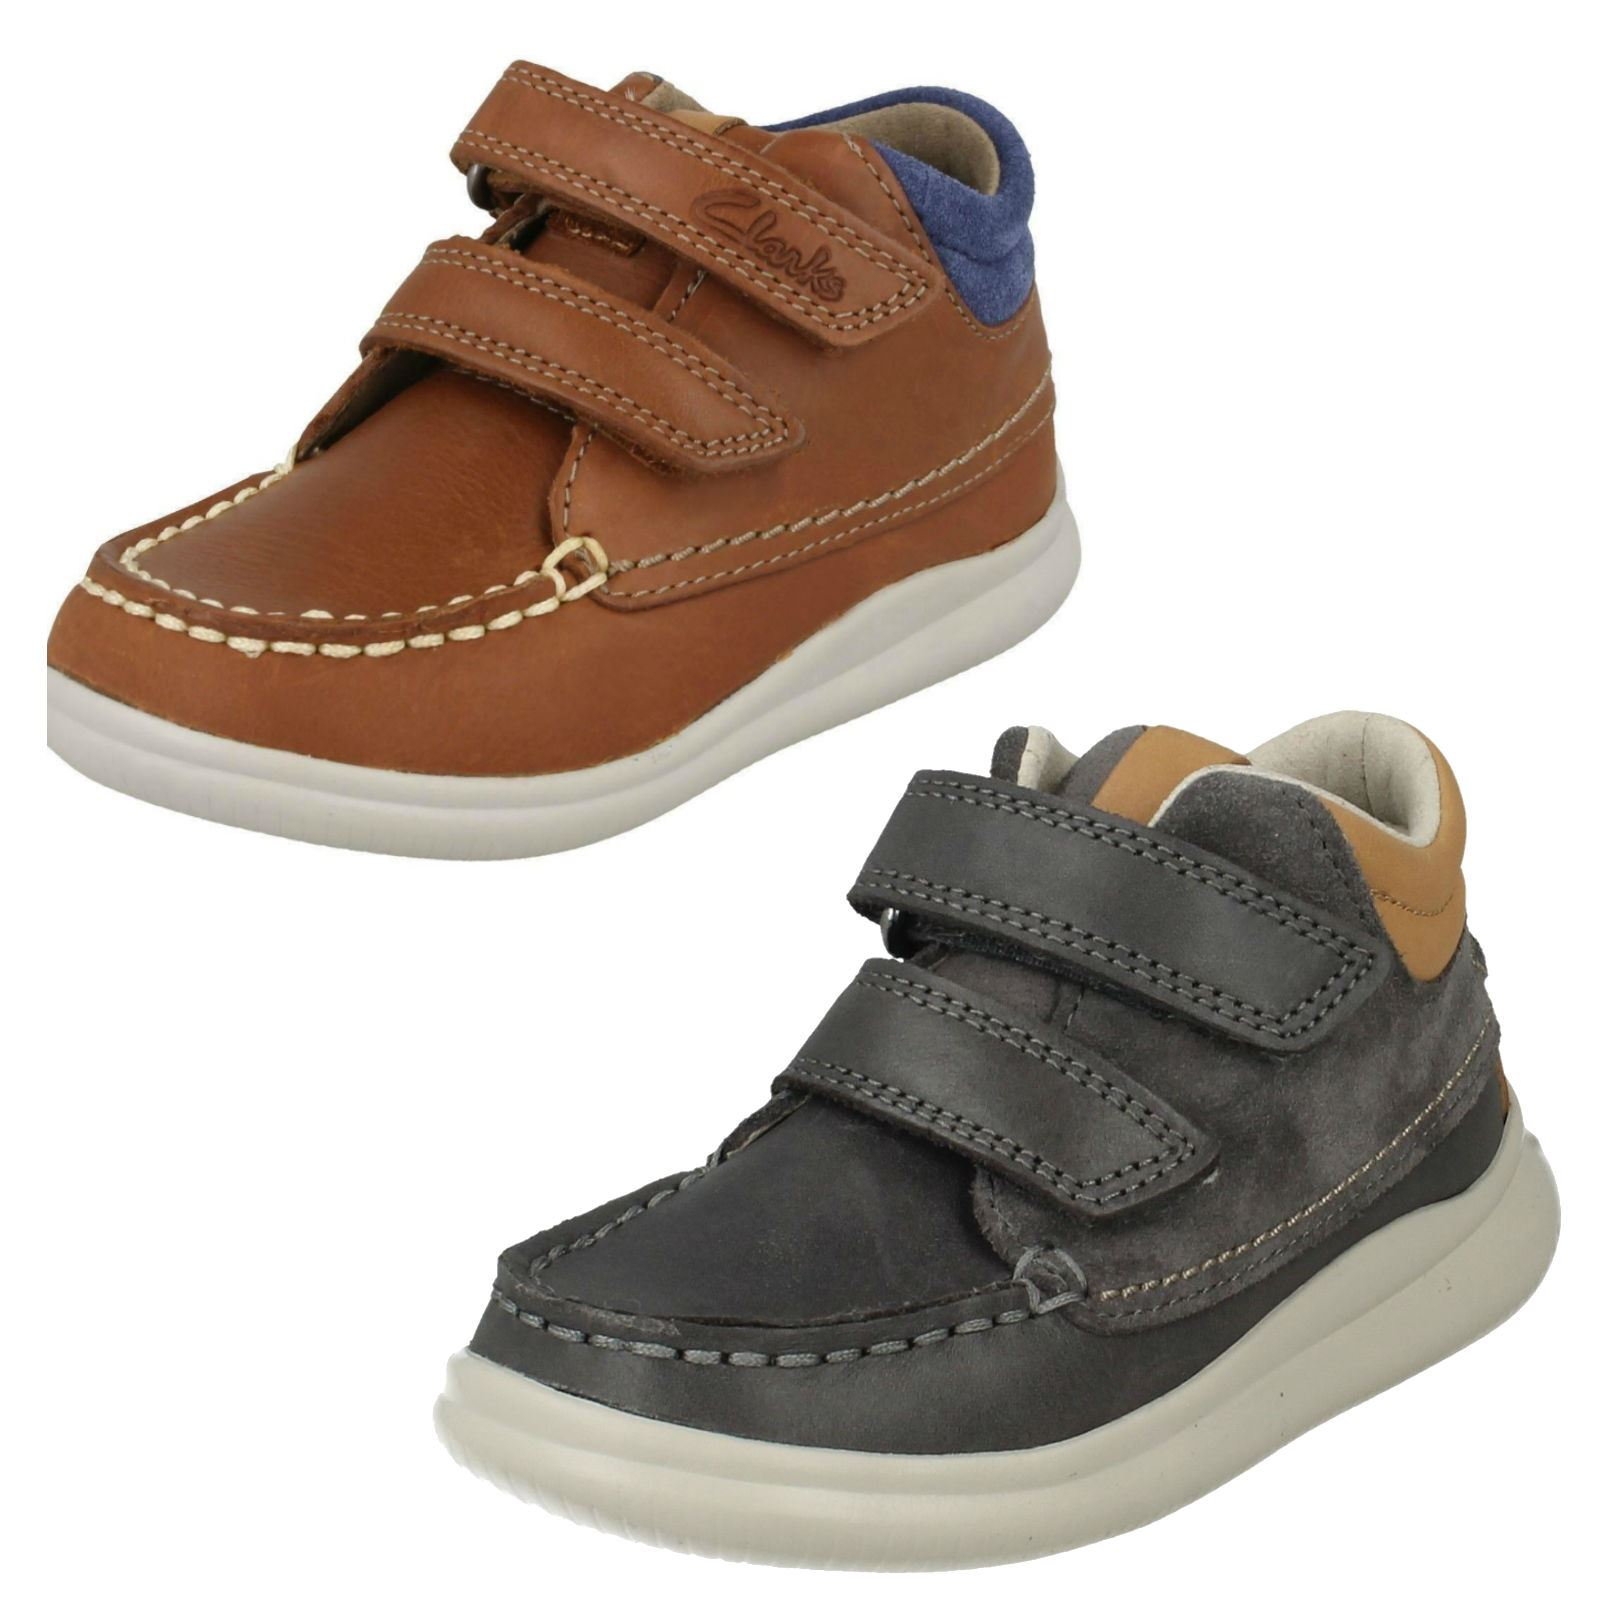 57cc3710424431 Boys First Shoes by Clarks BOOTS Cloud Tuktu UK 6 Infant Tan (brown) F.  About this product. Picture 1 of 9 ...